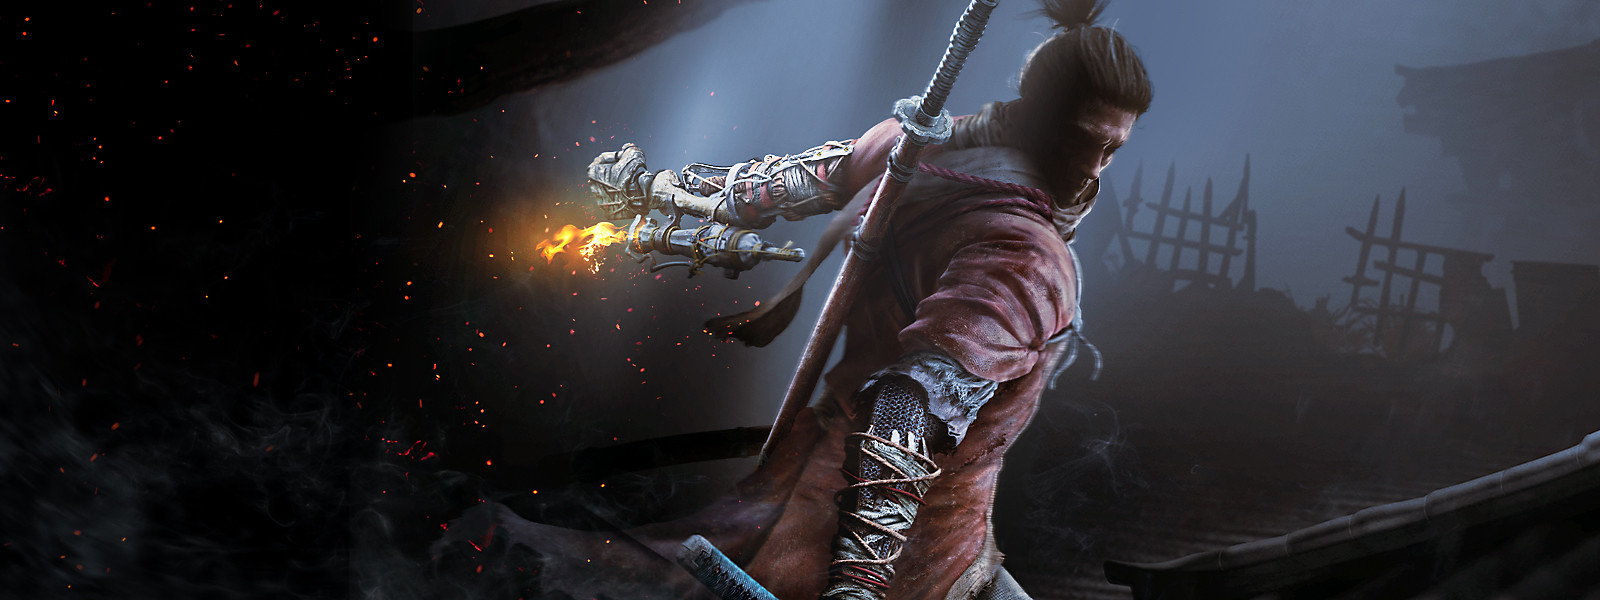 sekiro-shadows-die-twice-normal-hero-background-01-ps4-us-21jun18.jpg